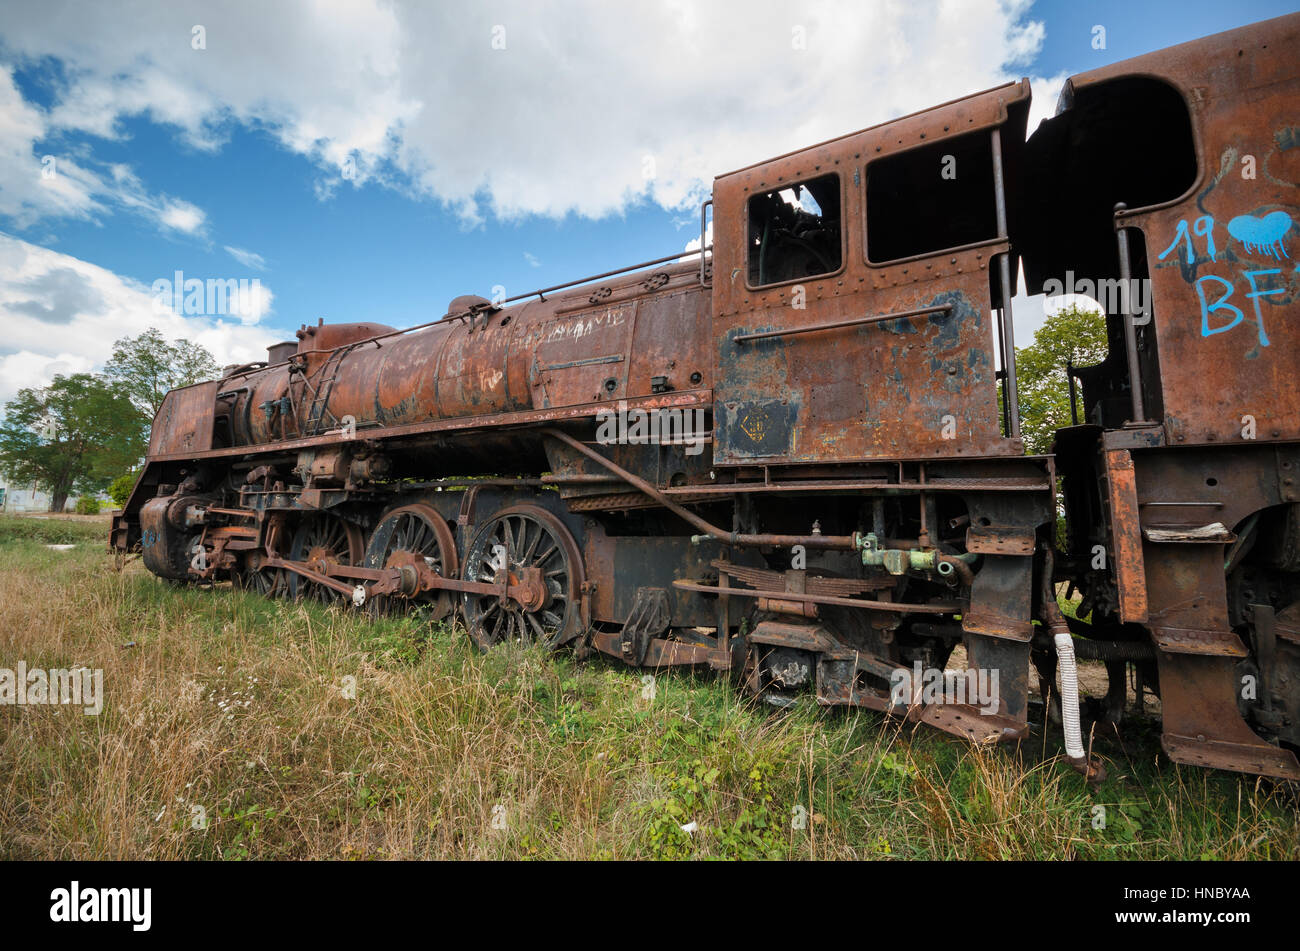 Abandoned Rusty Steam Locomotive Stock Photo, Royalty Free